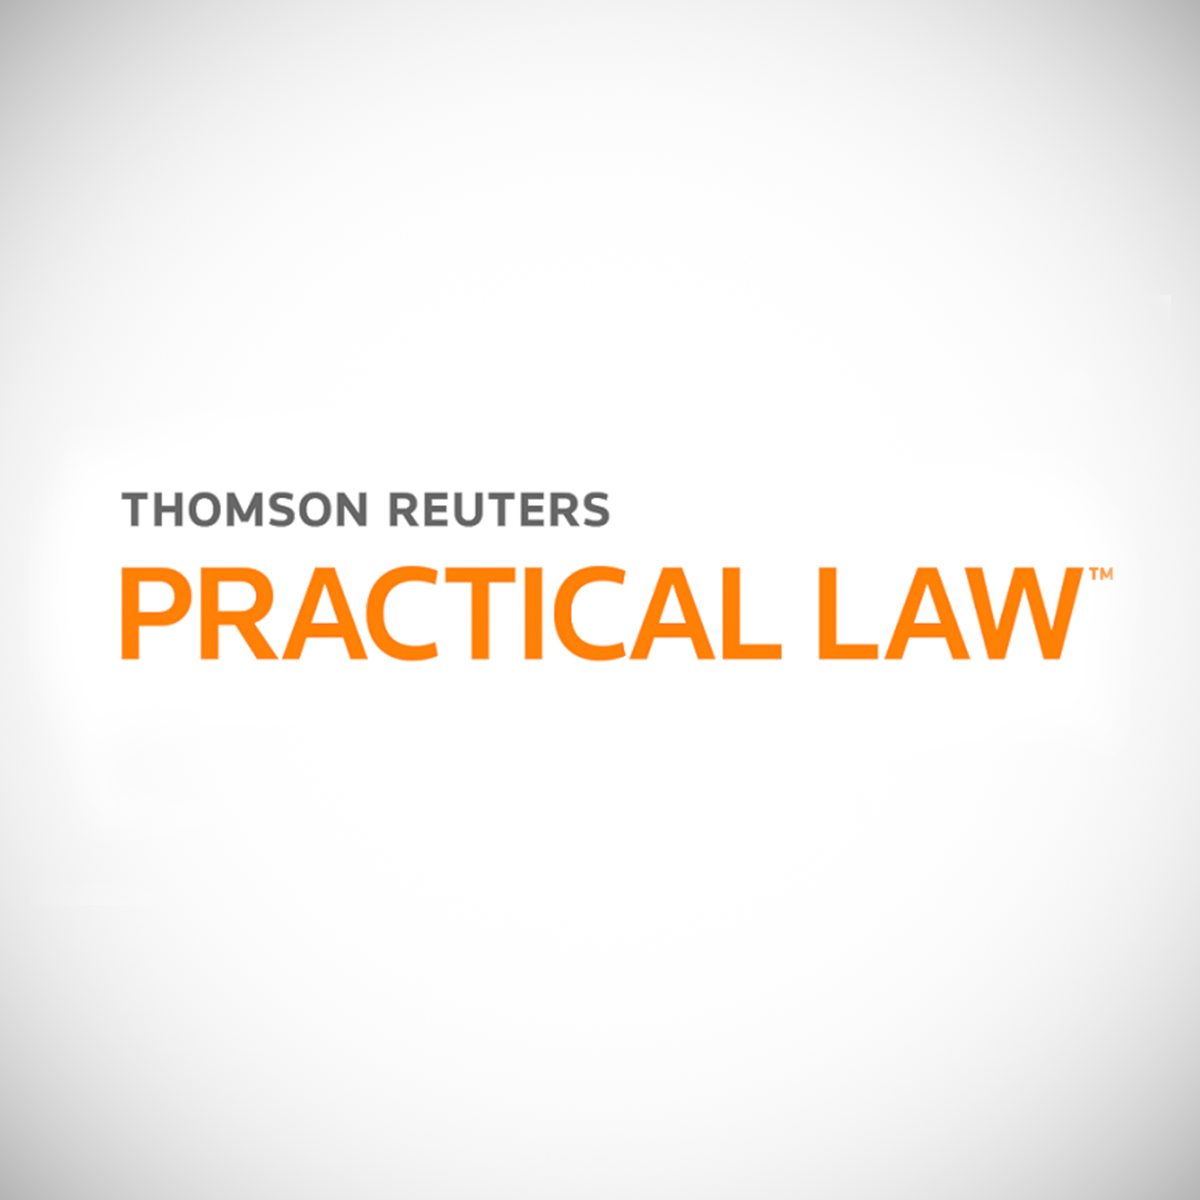 AL Armouti Authors For The Practical Law Journal: Sale Of Goods In Jordan